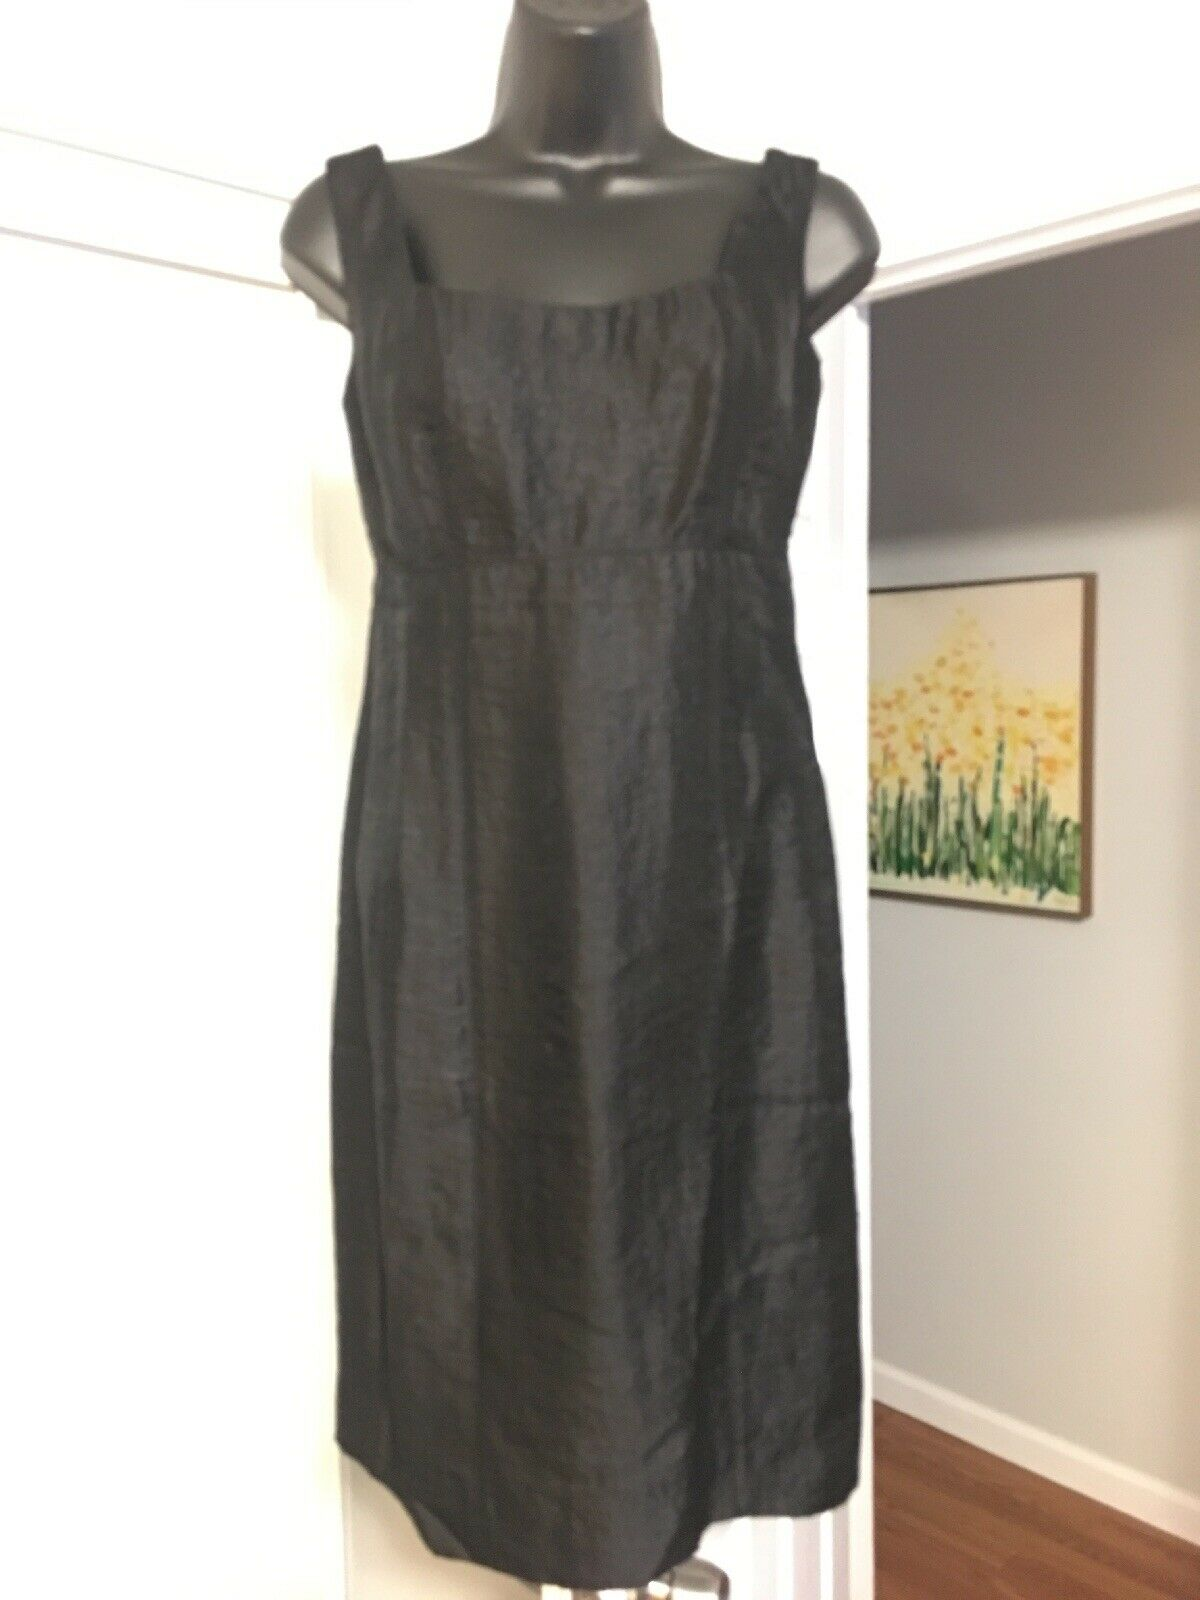 Z By ZELDA damen schwarz Dress 2 Sleeveless Above Knee Fully Lined R1